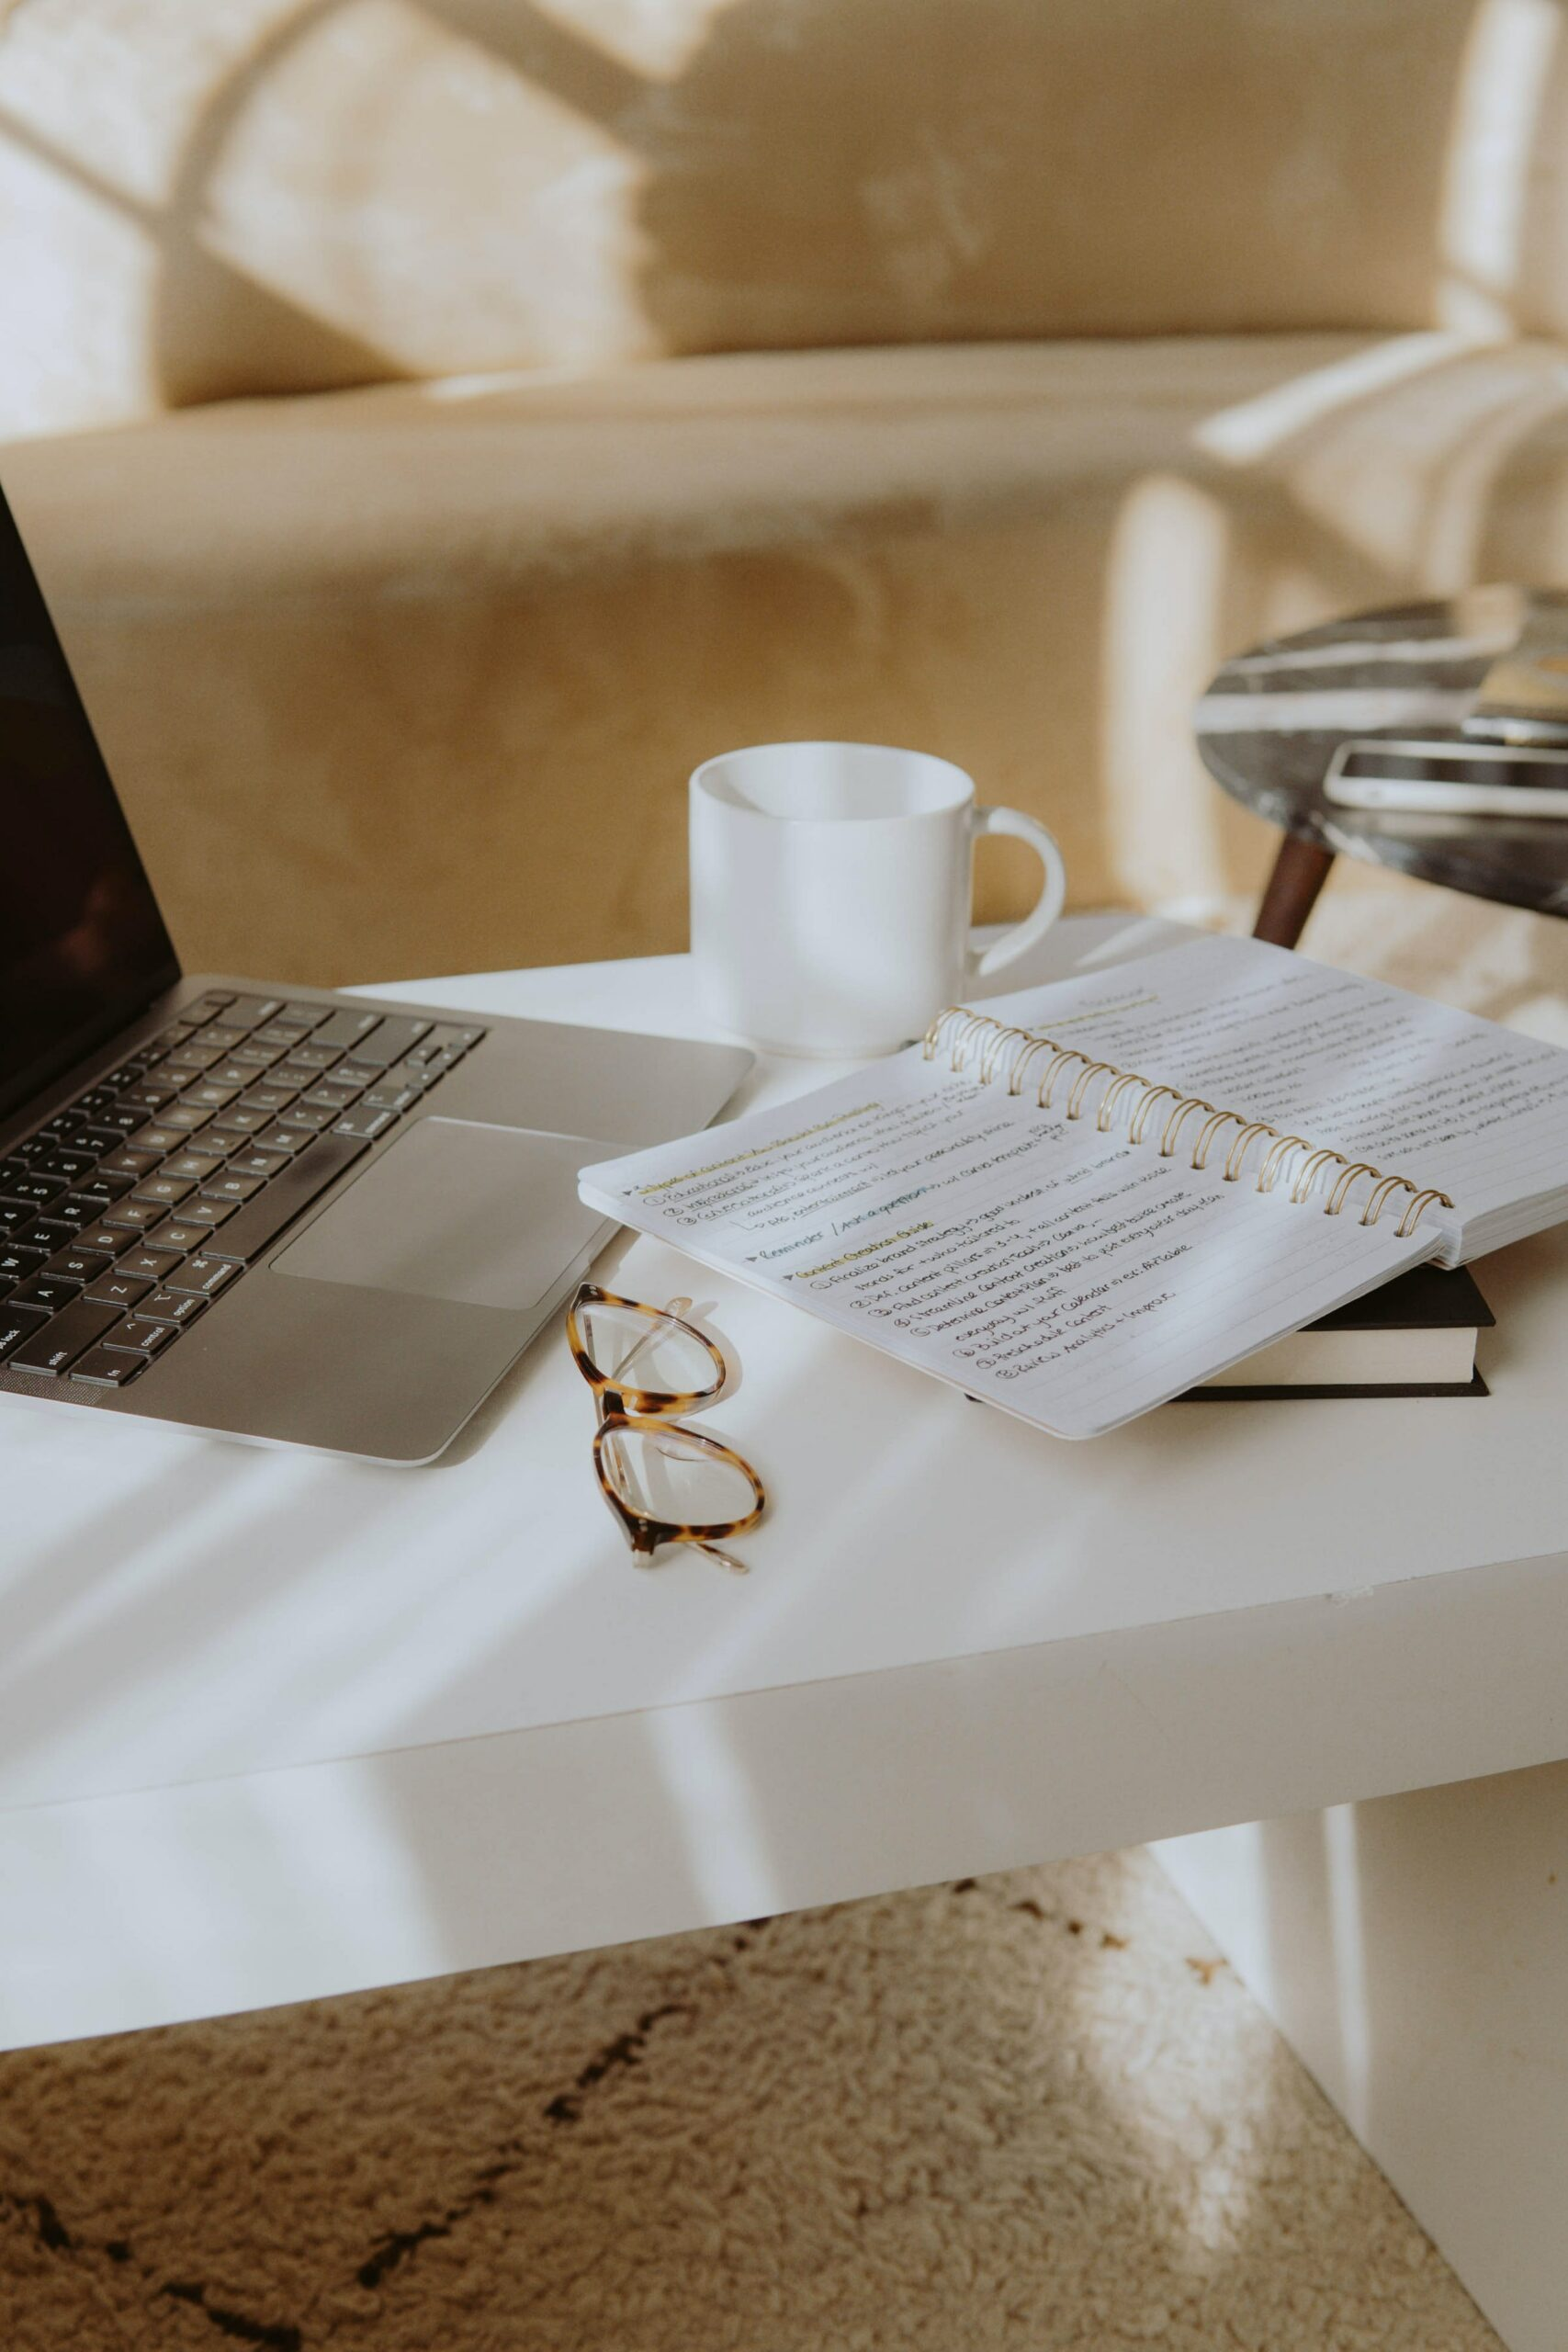 A table with a laptop, glasses, mug, and notebook